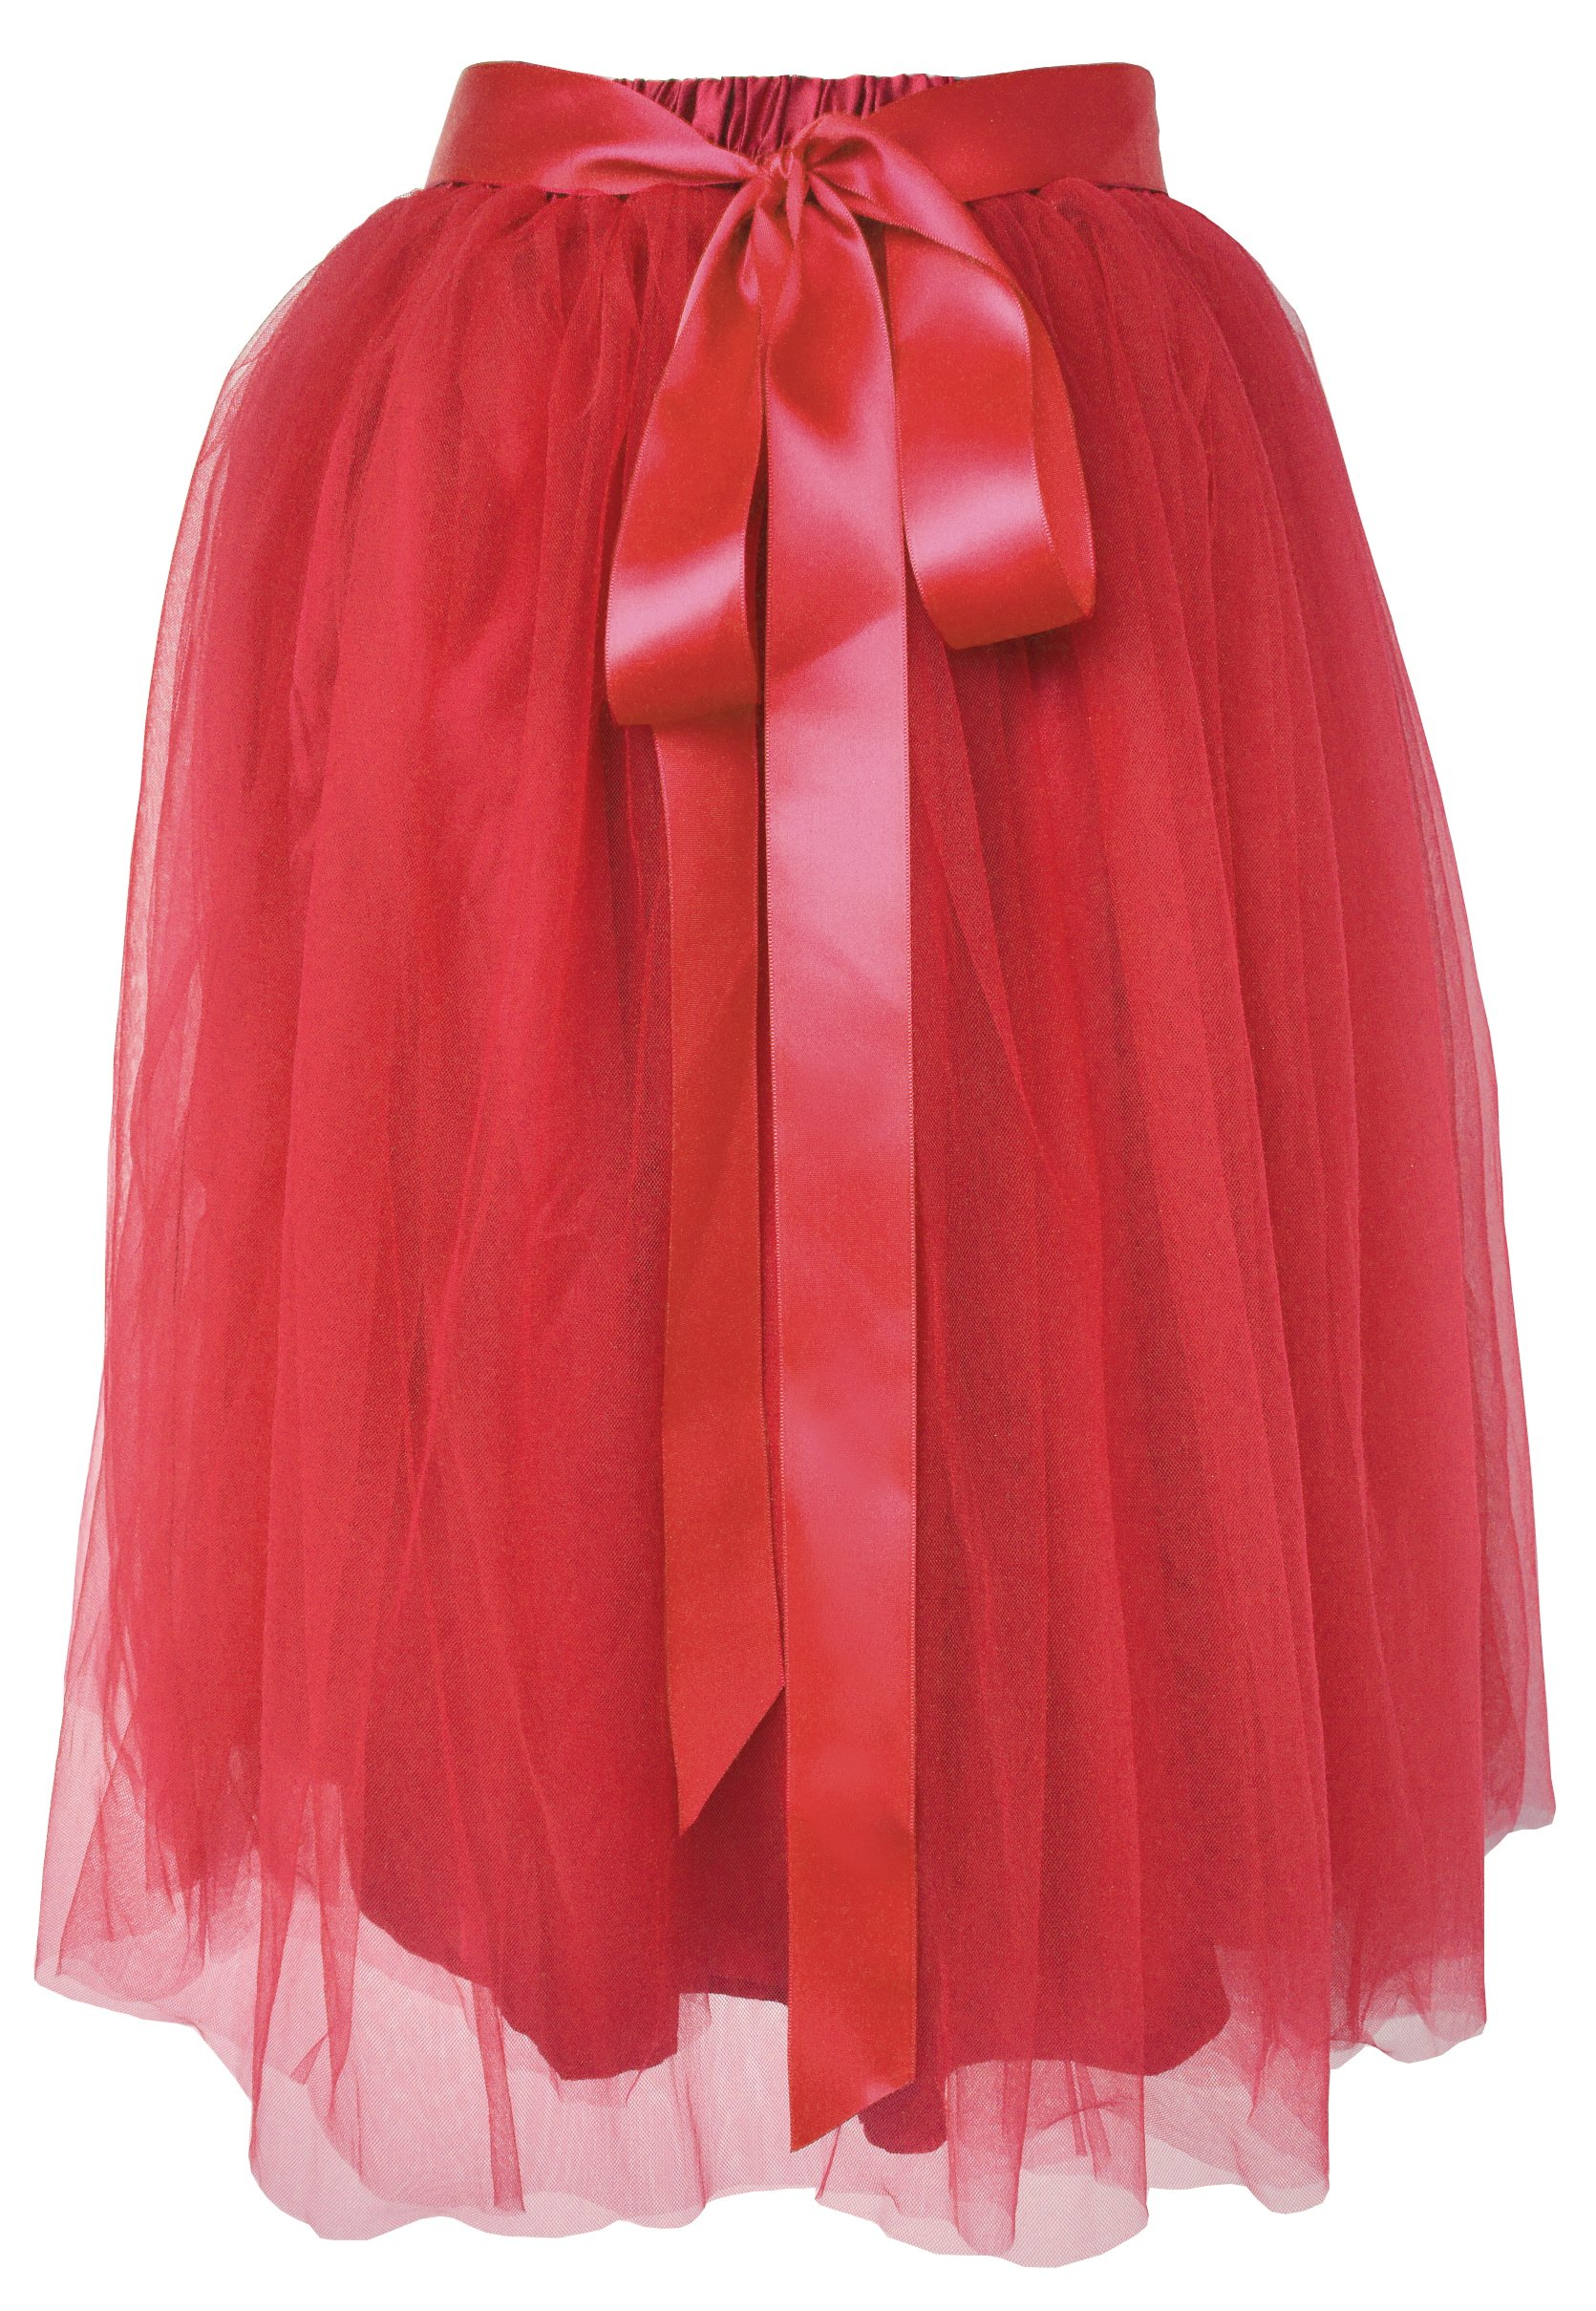 Dancina Women's Knee Length Tutu A Line Layered Tulle Skirt Red Plus (Size 12-24)